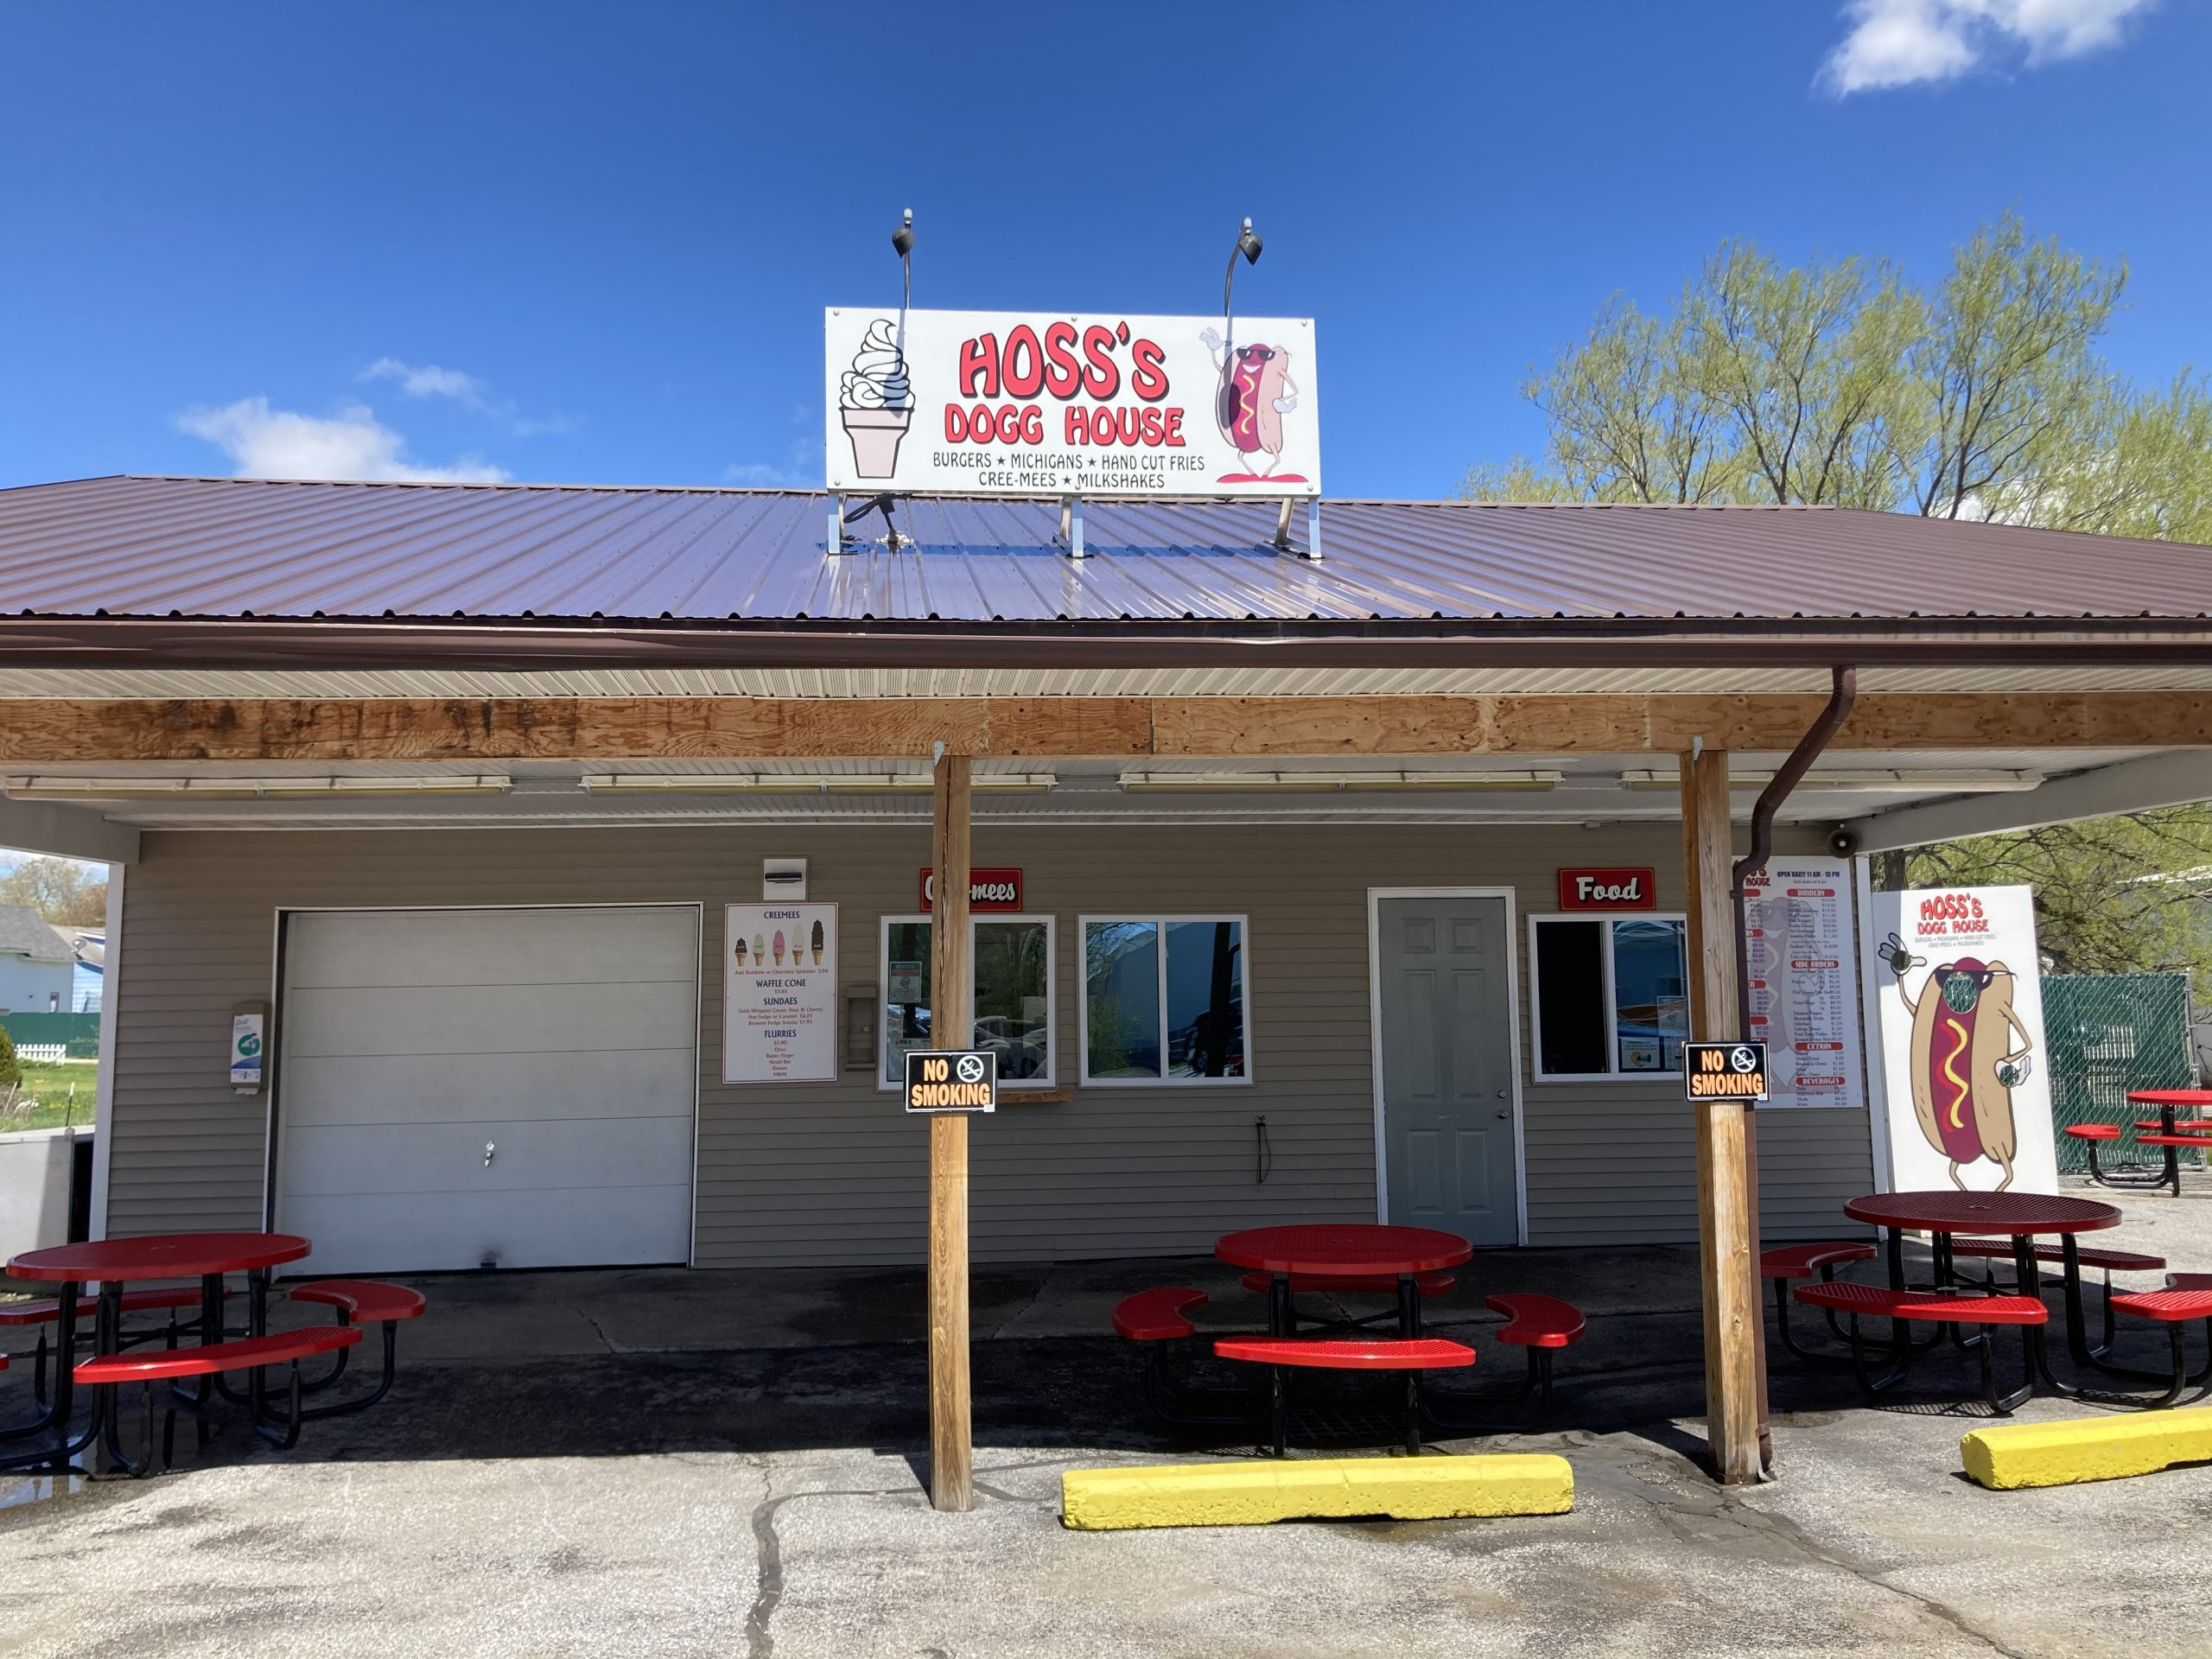 Lunch and Dinner at Hoss's Dogg House